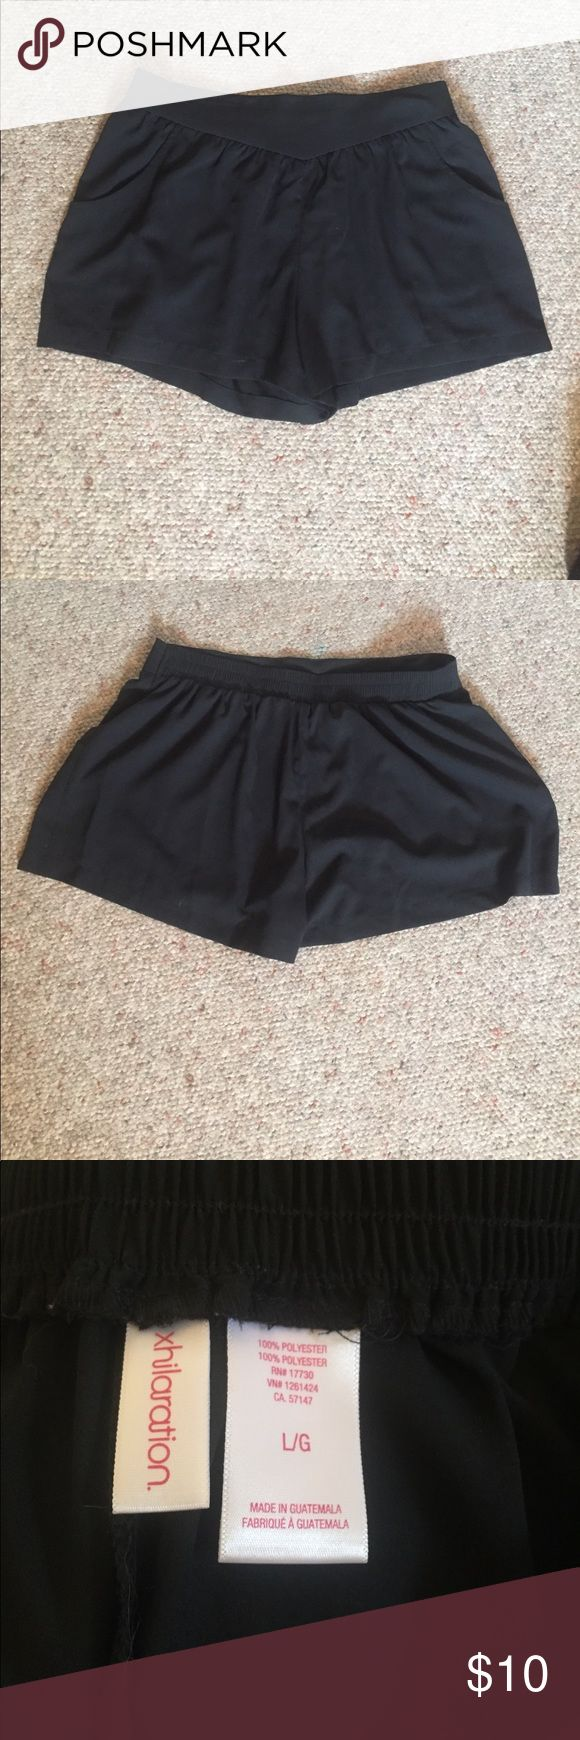 Black loose shorts These black shorts have a comfy waistband and pockets! Nice to wear in the summer with something a little more dressy! Never worn! The tags were accidentally ripped off Xhilaration Shorts